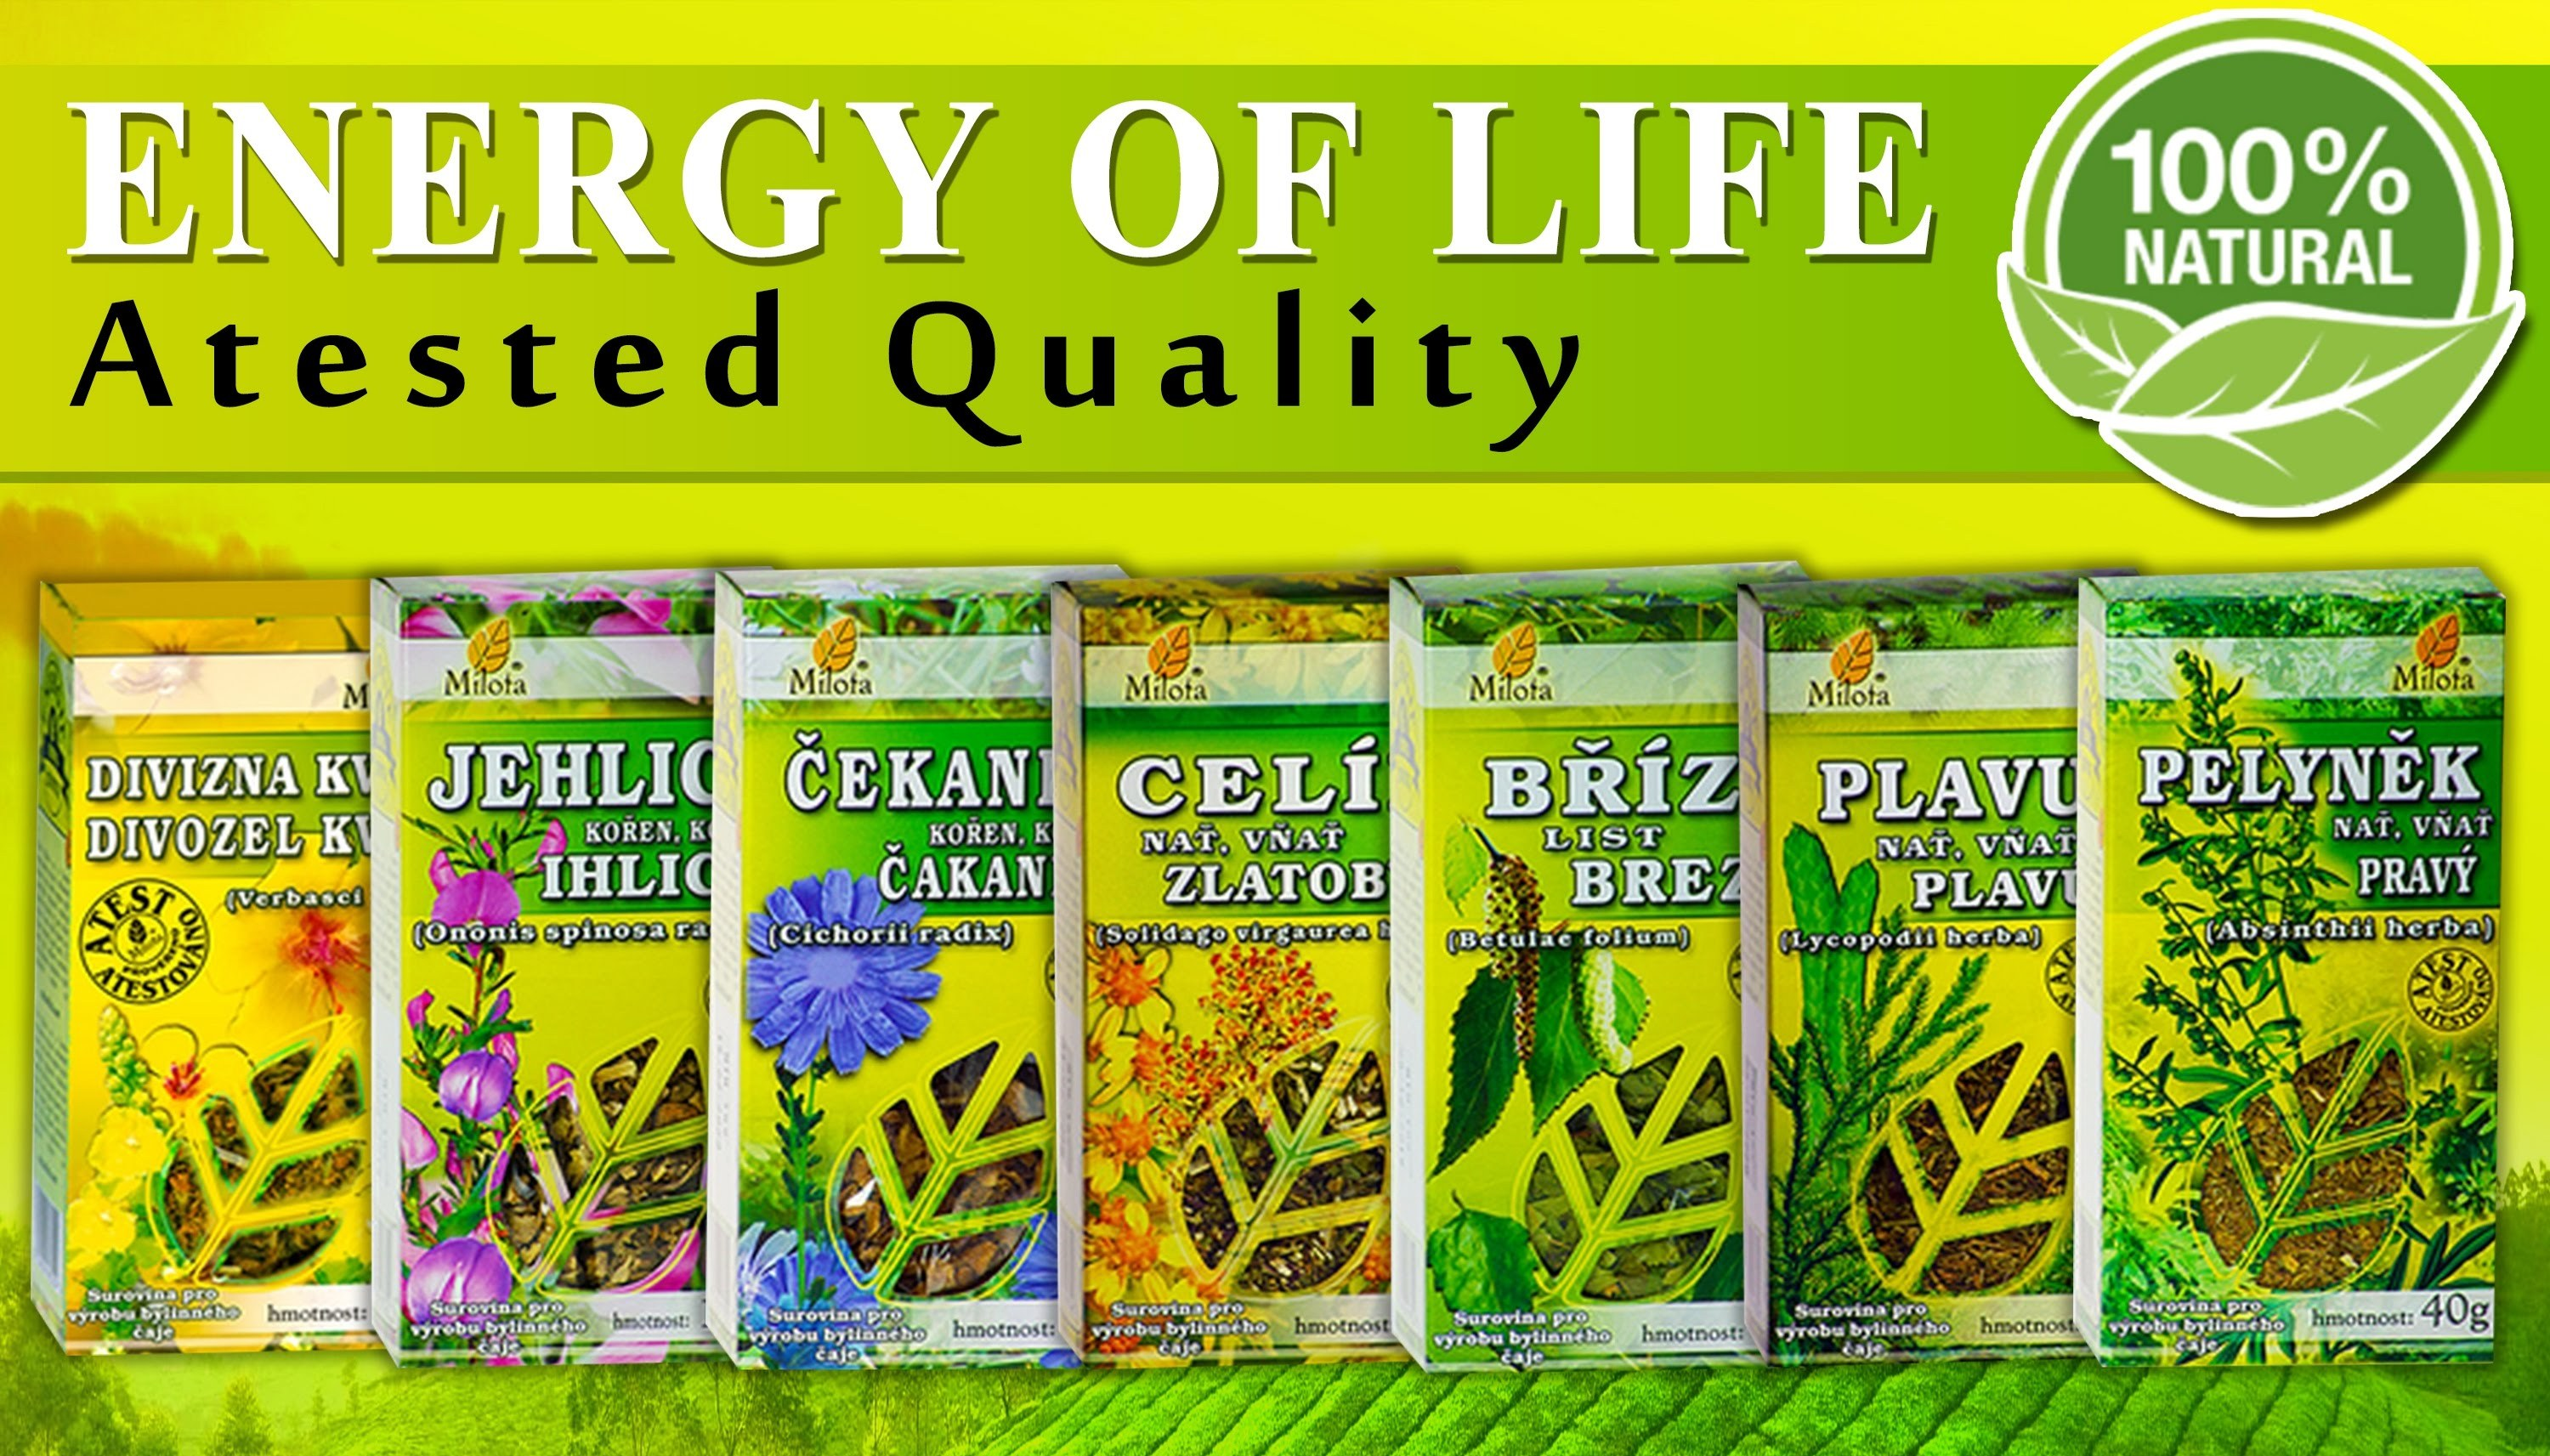 Over 150 kinds of herbal teas